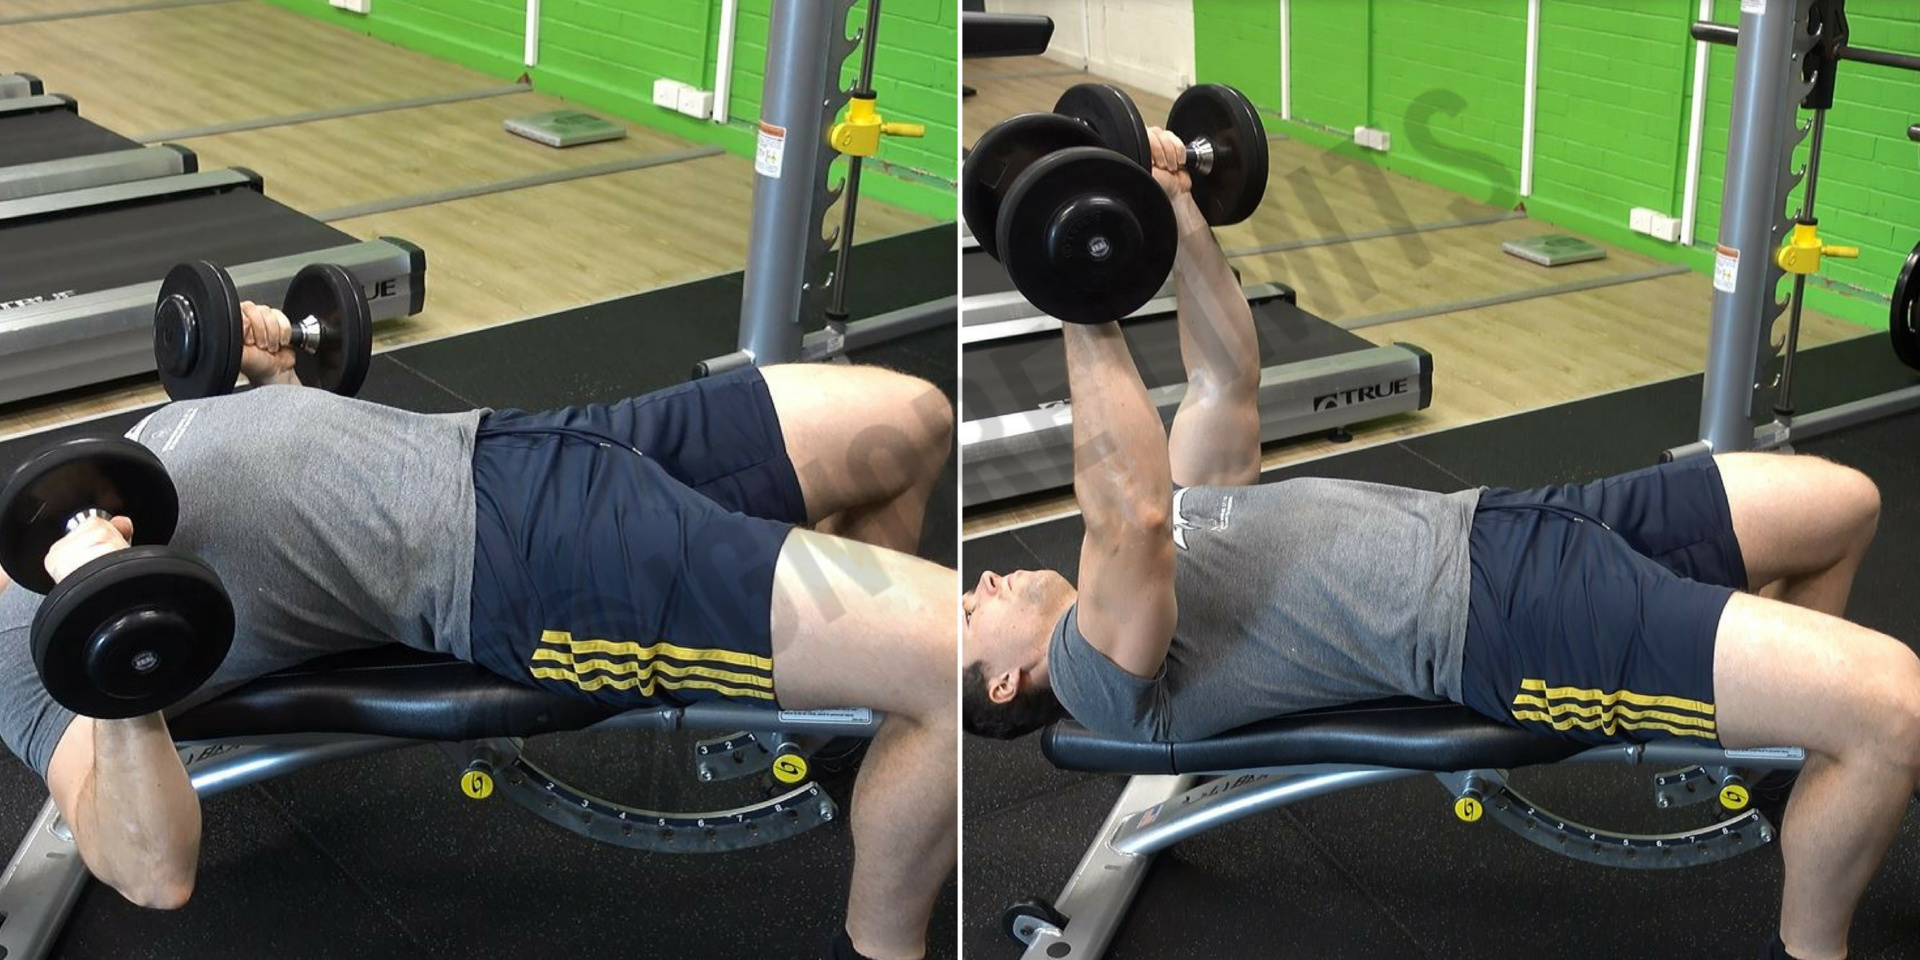 How To: Decline Dumbbell Bench Press - Ignore Limits